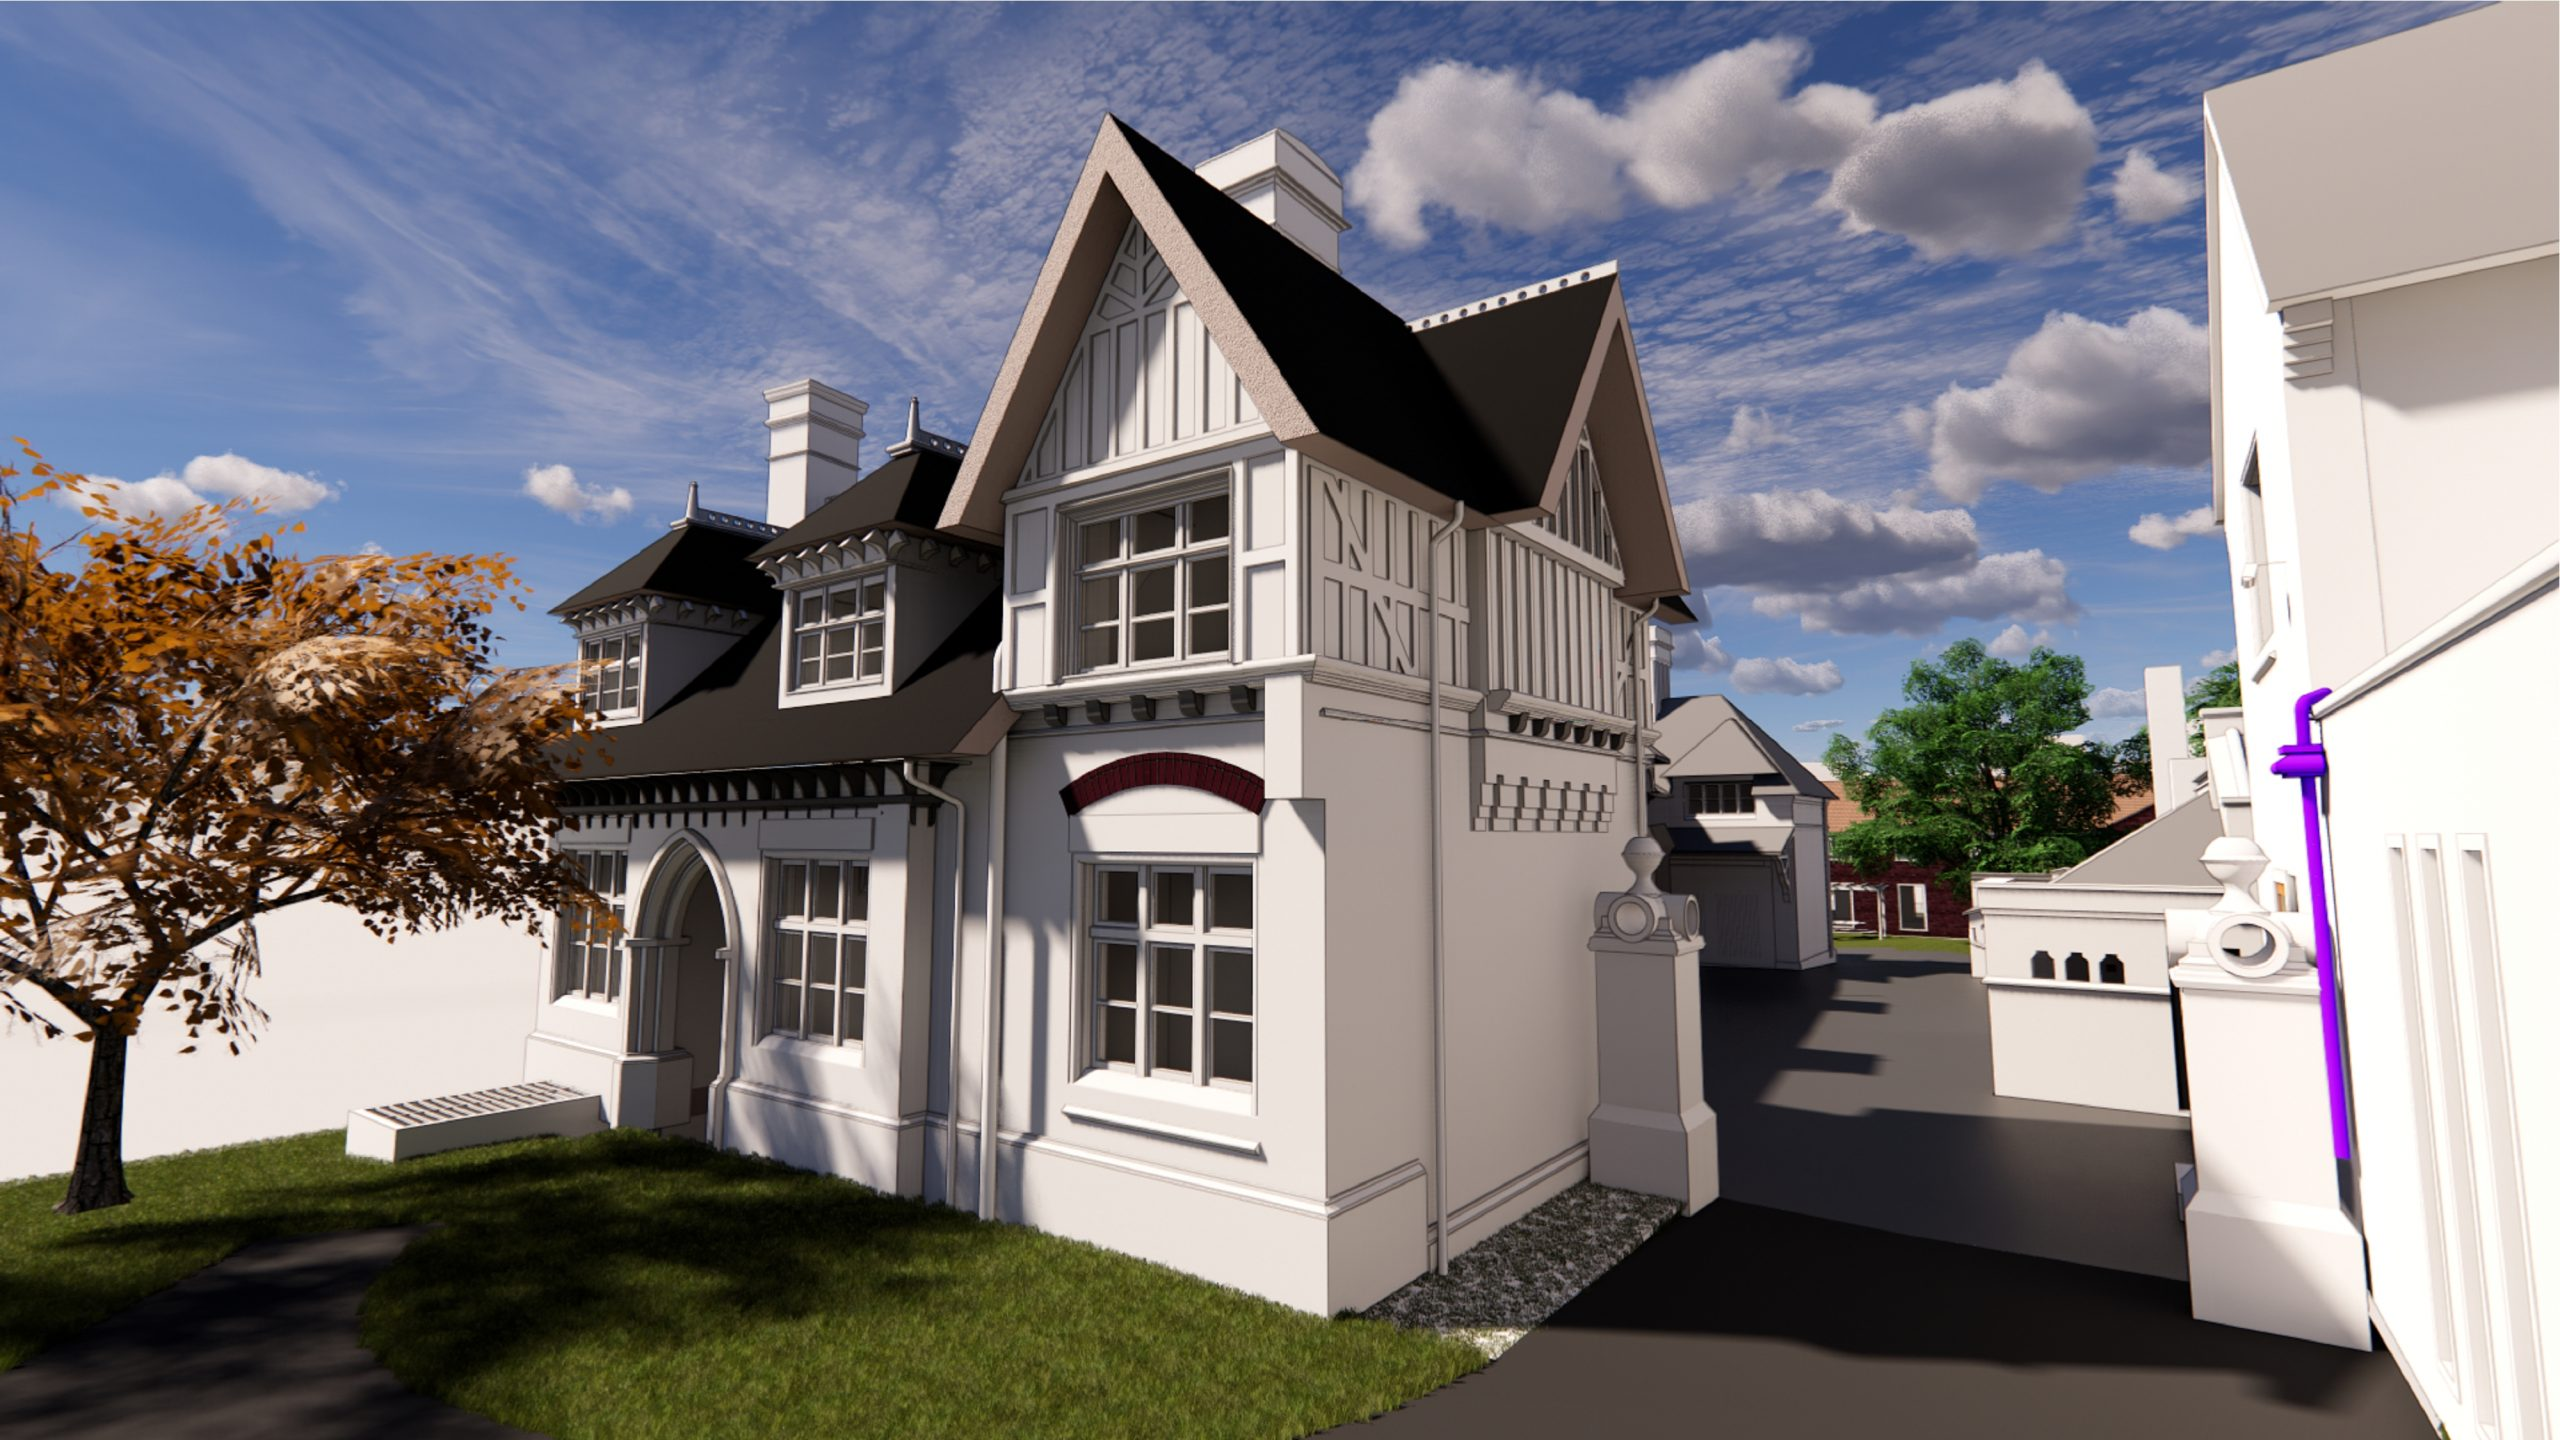 Leicester University, Rendering 3D, detached house